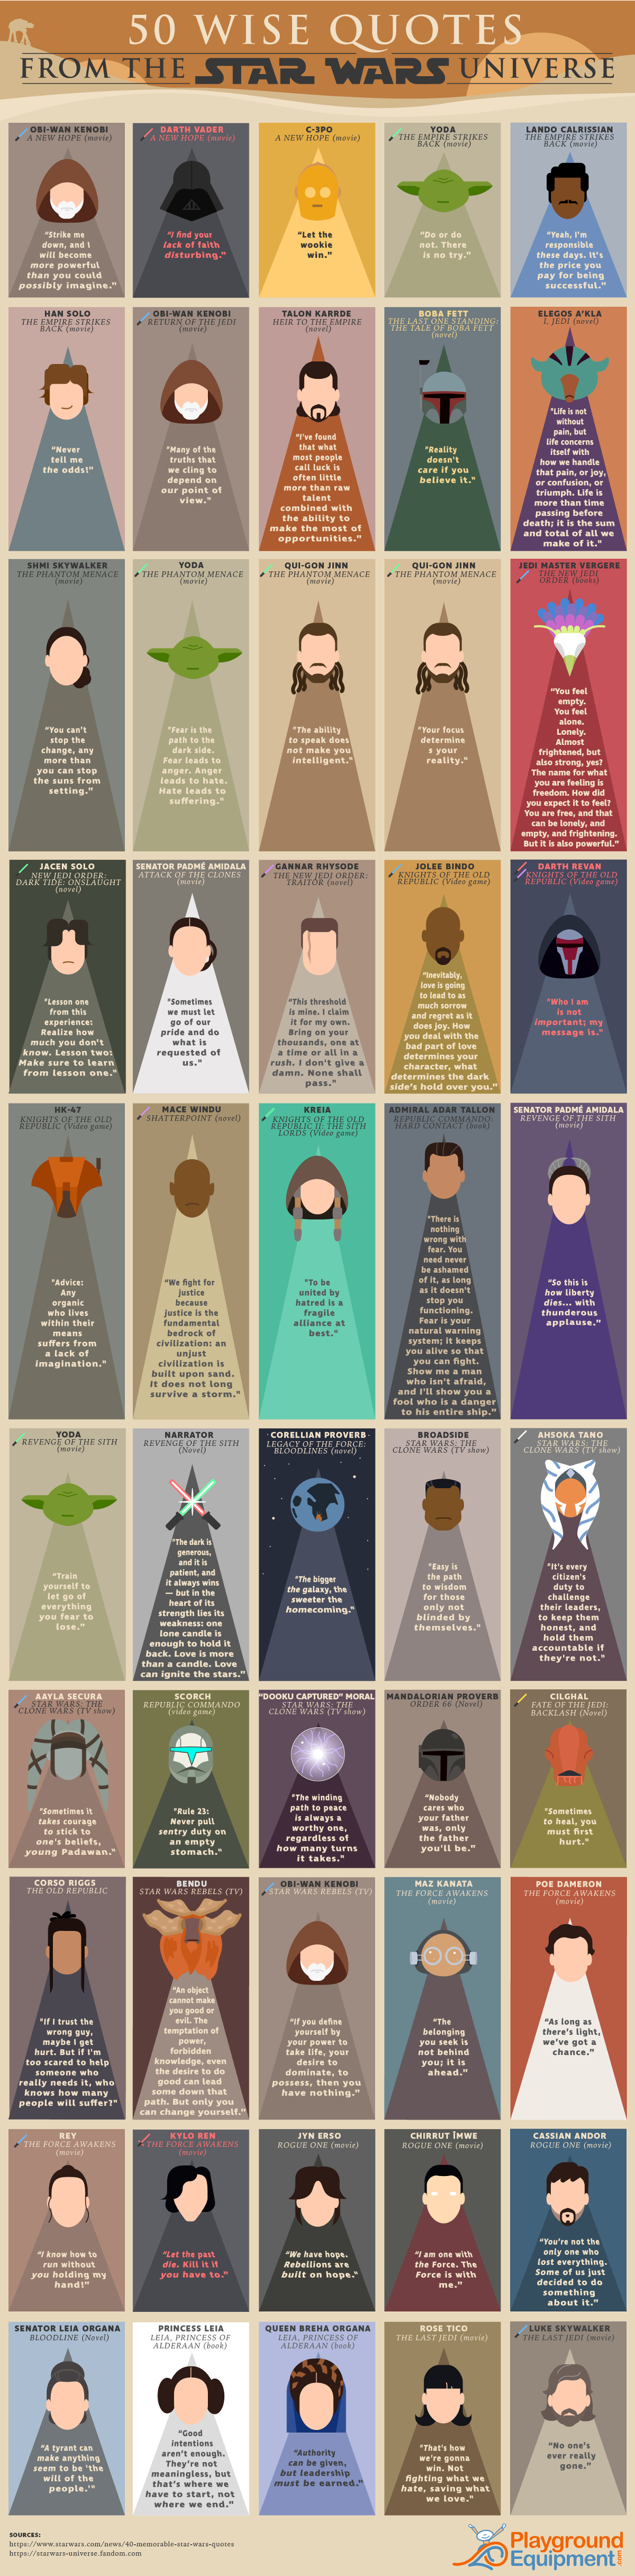 50-wise-quotes-from-star-wars-universe-5